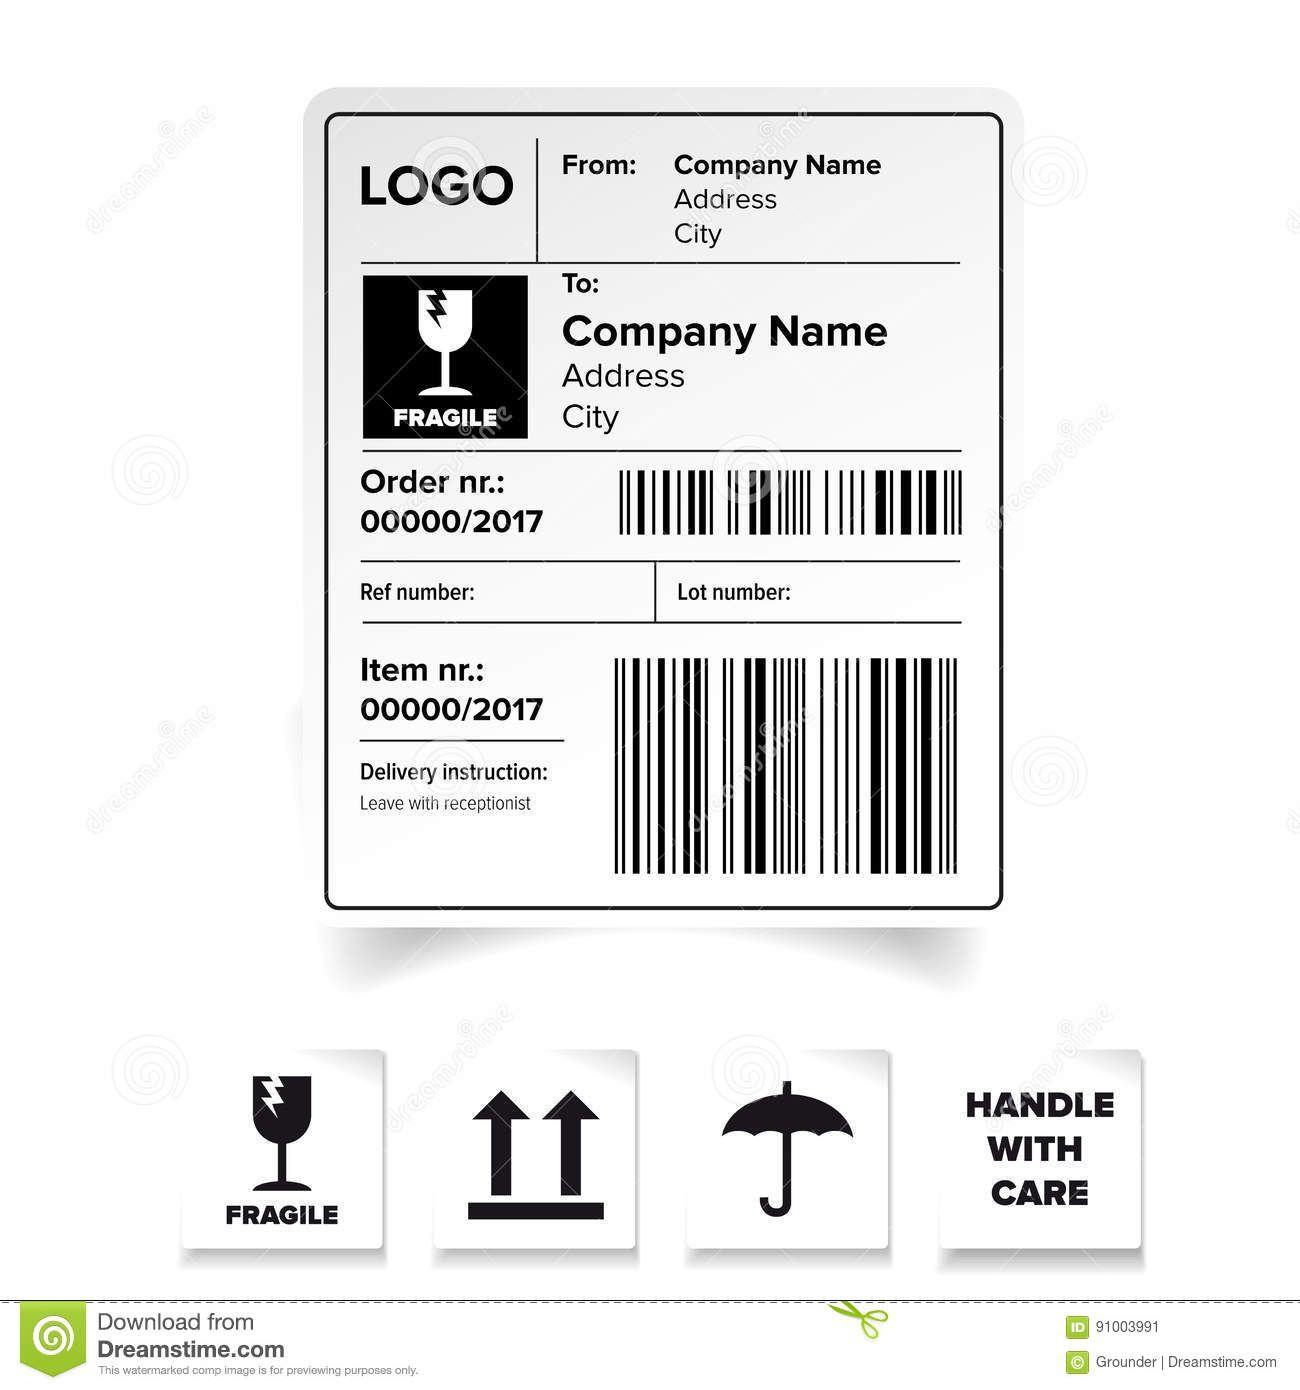 007 Best Free Shipping Label Template Sample  Format Word For MacFull